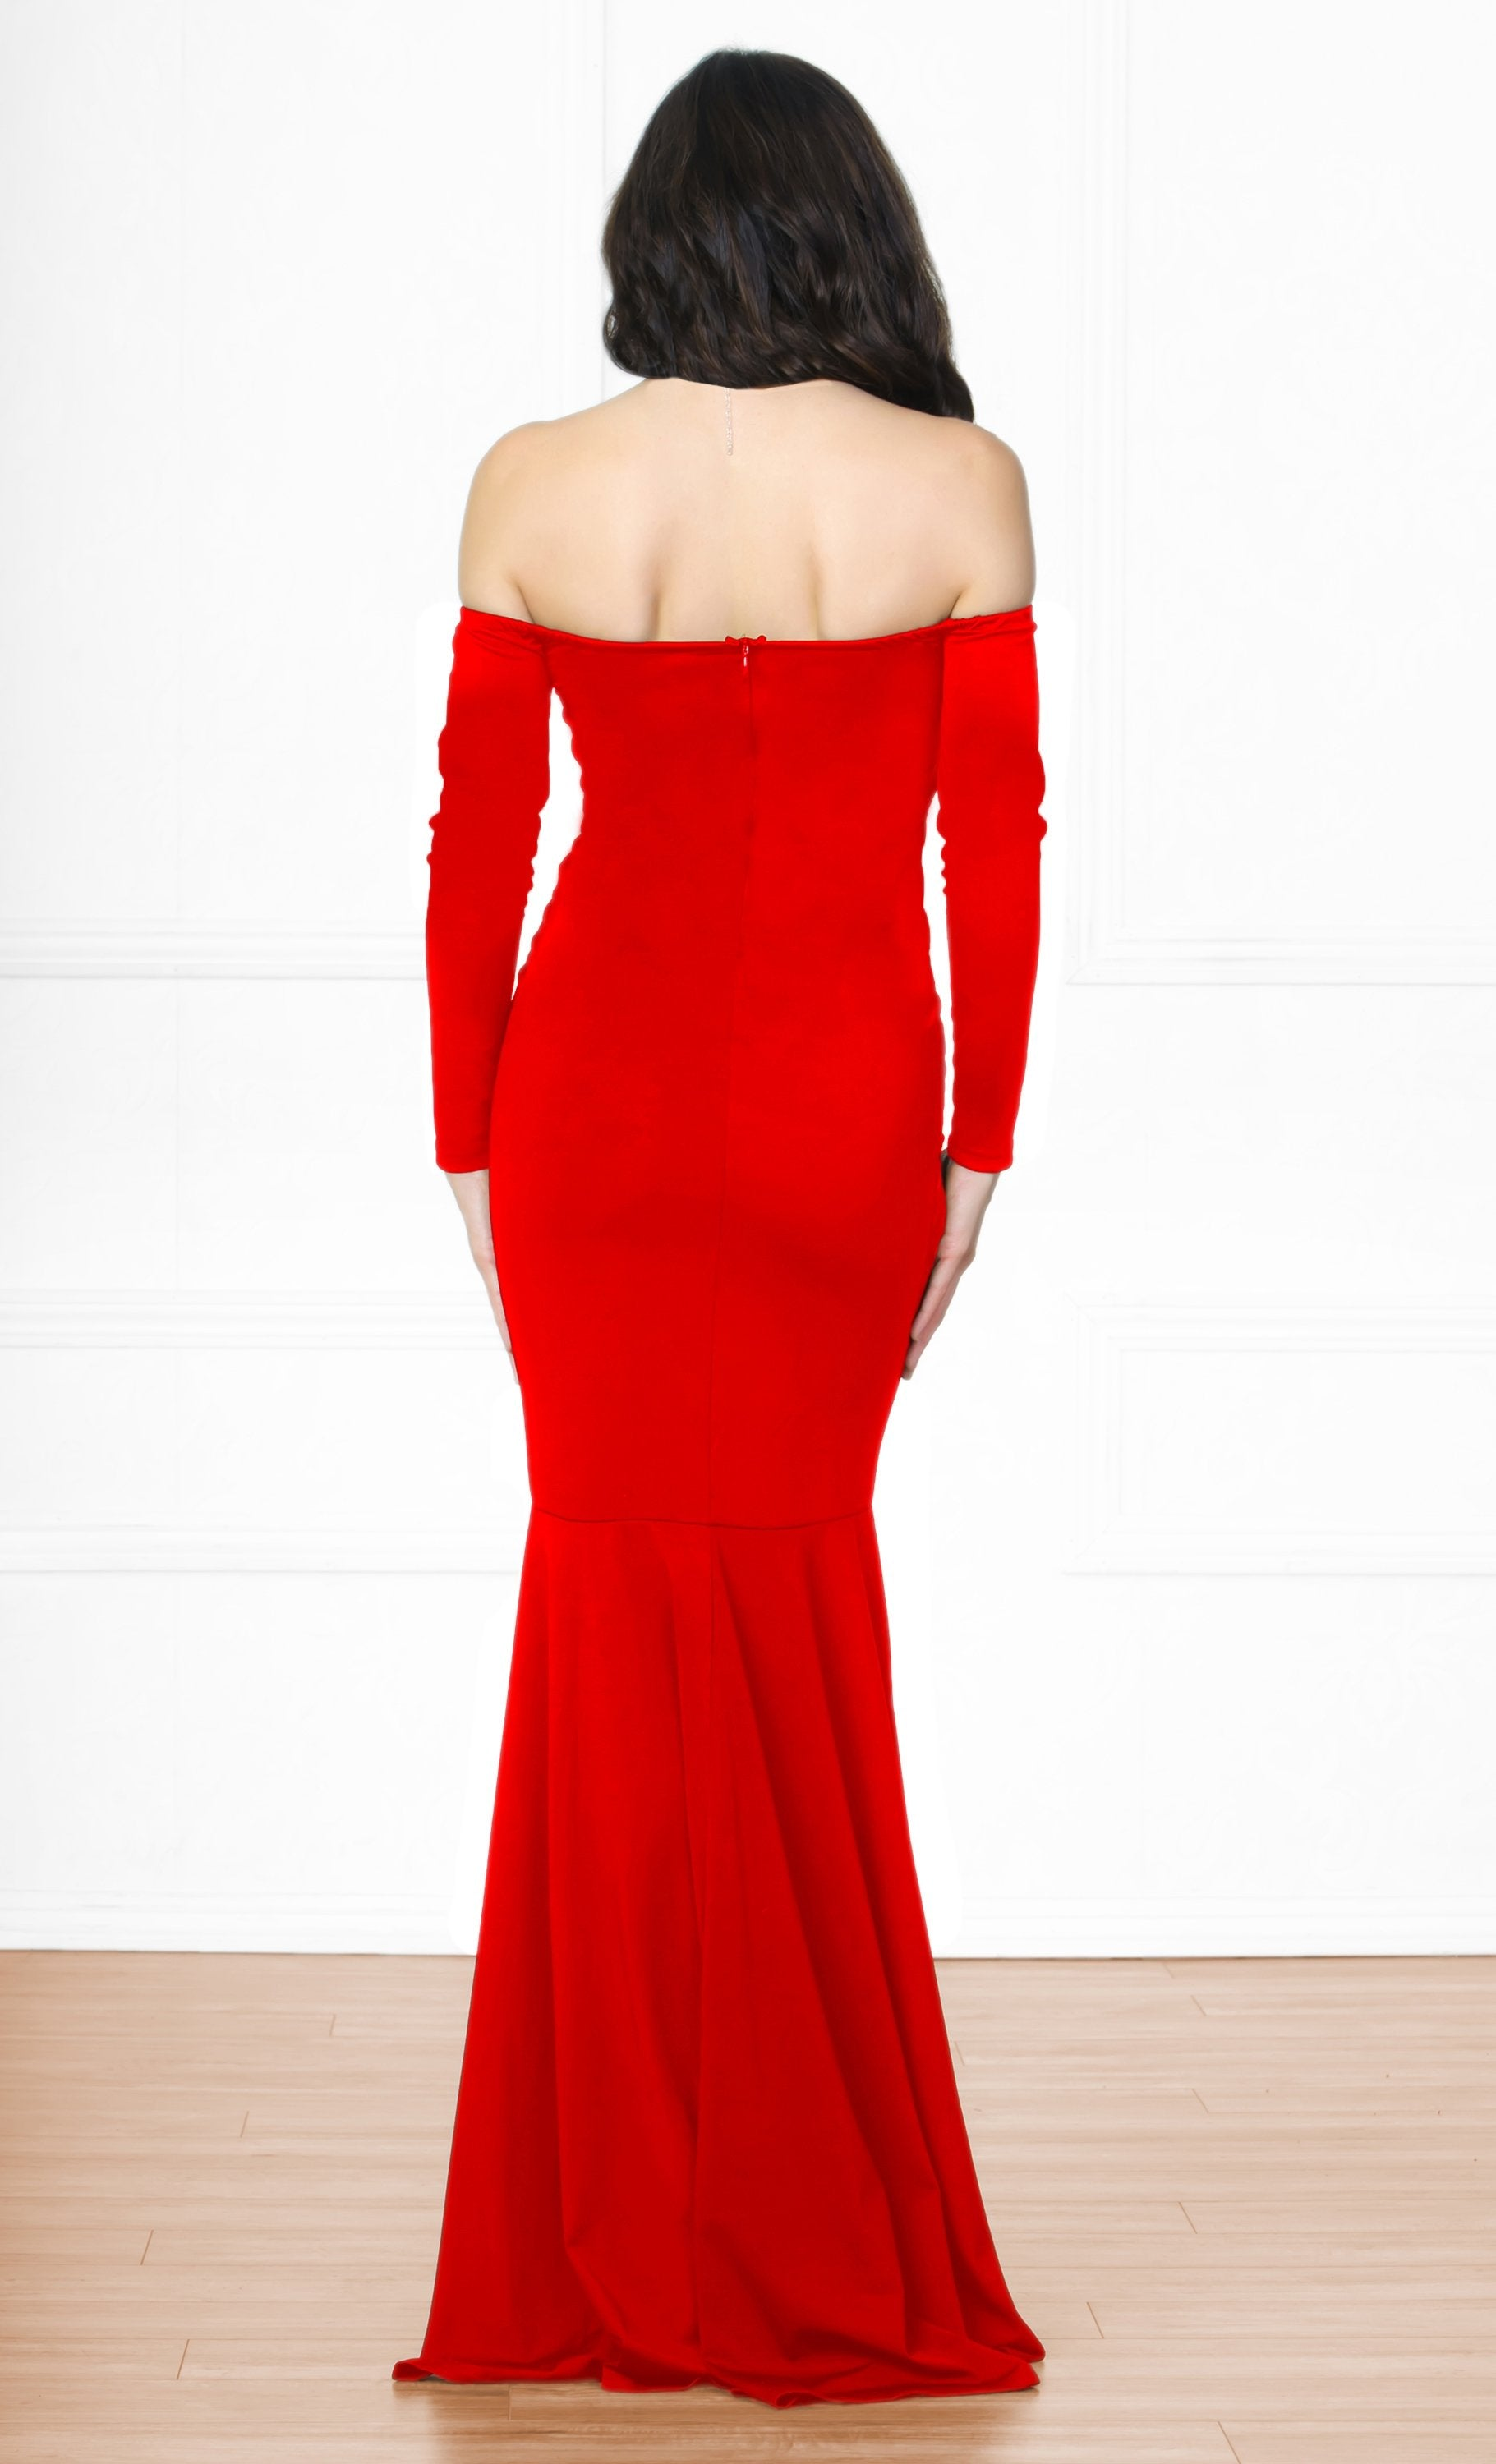 Indie XO Dramatic Moment Red Long Sleeve Off The Shoulder Mermaid Maxi Dress